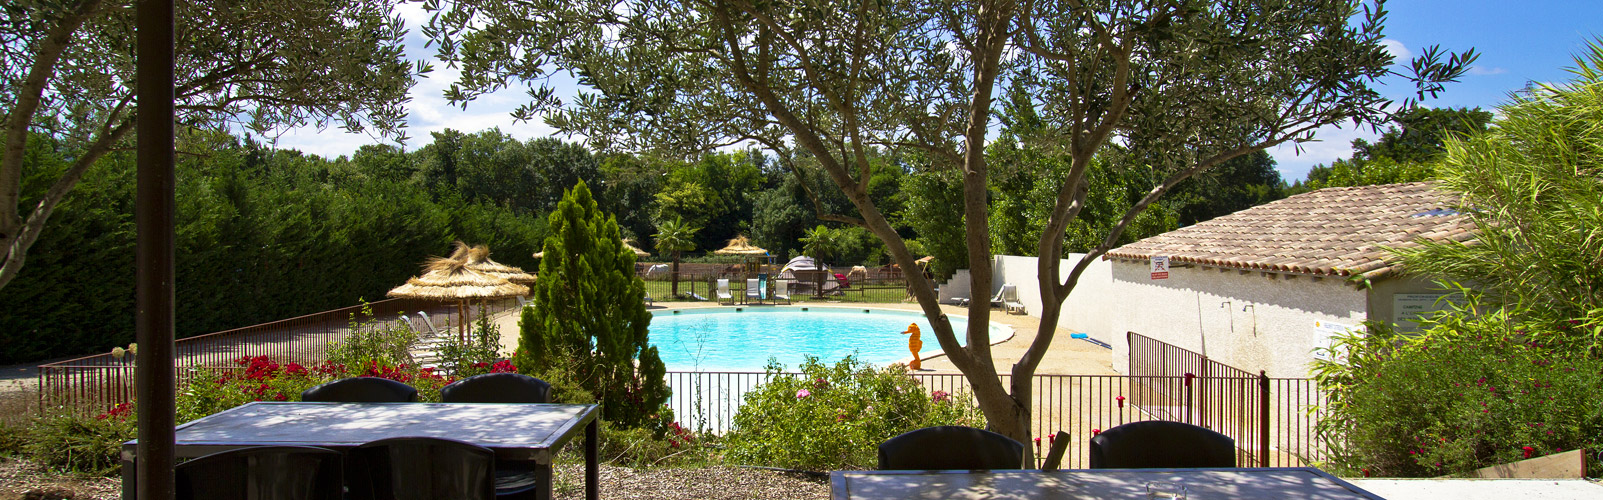 camping-carcassonne-piscine